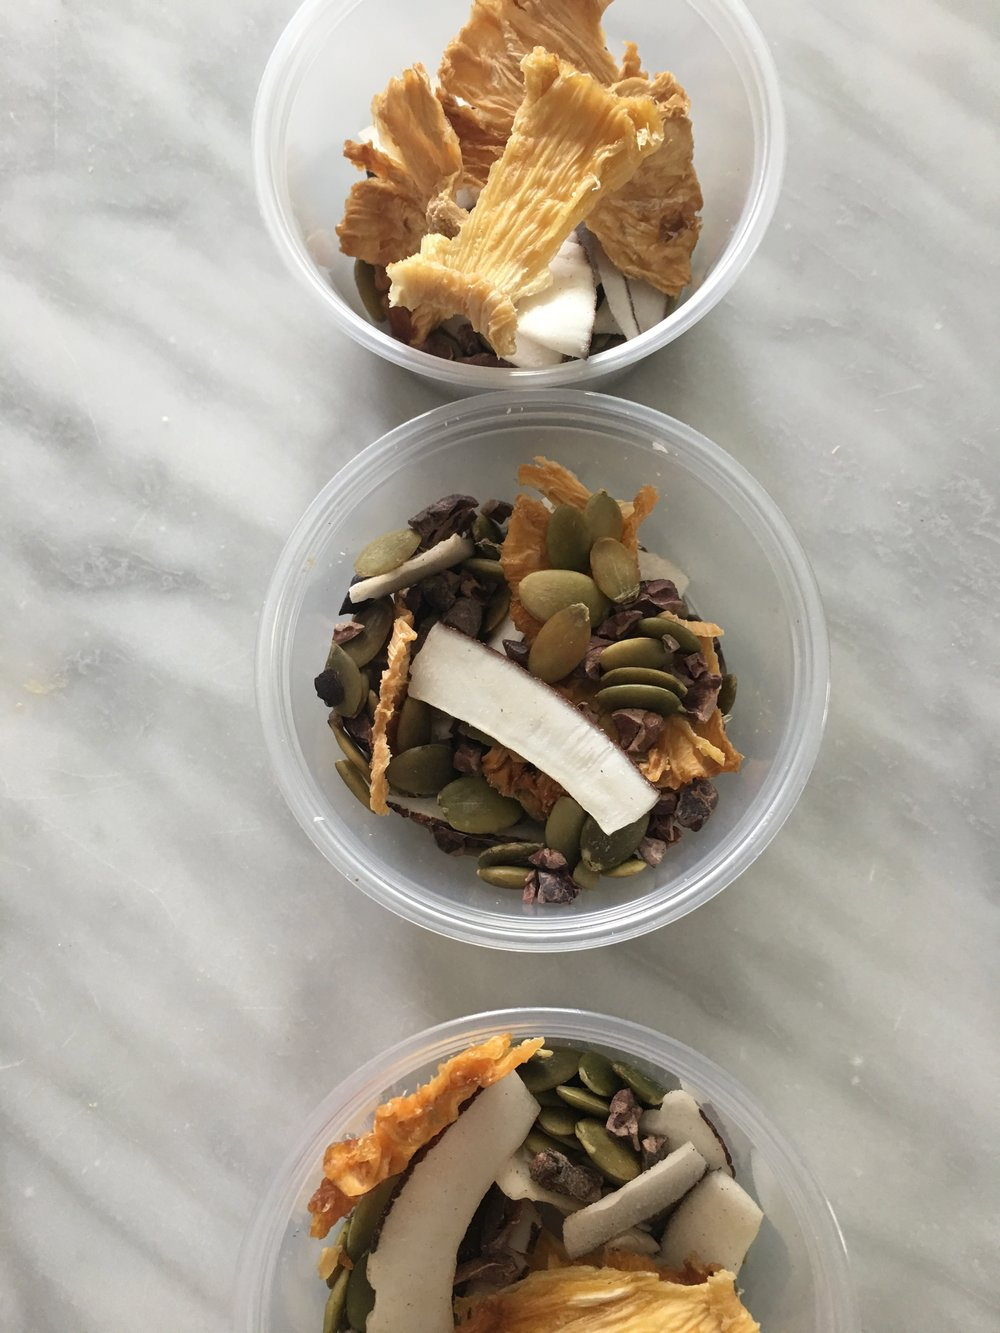 Snacks: Dried Fruit, cacao nibs, coconut chips